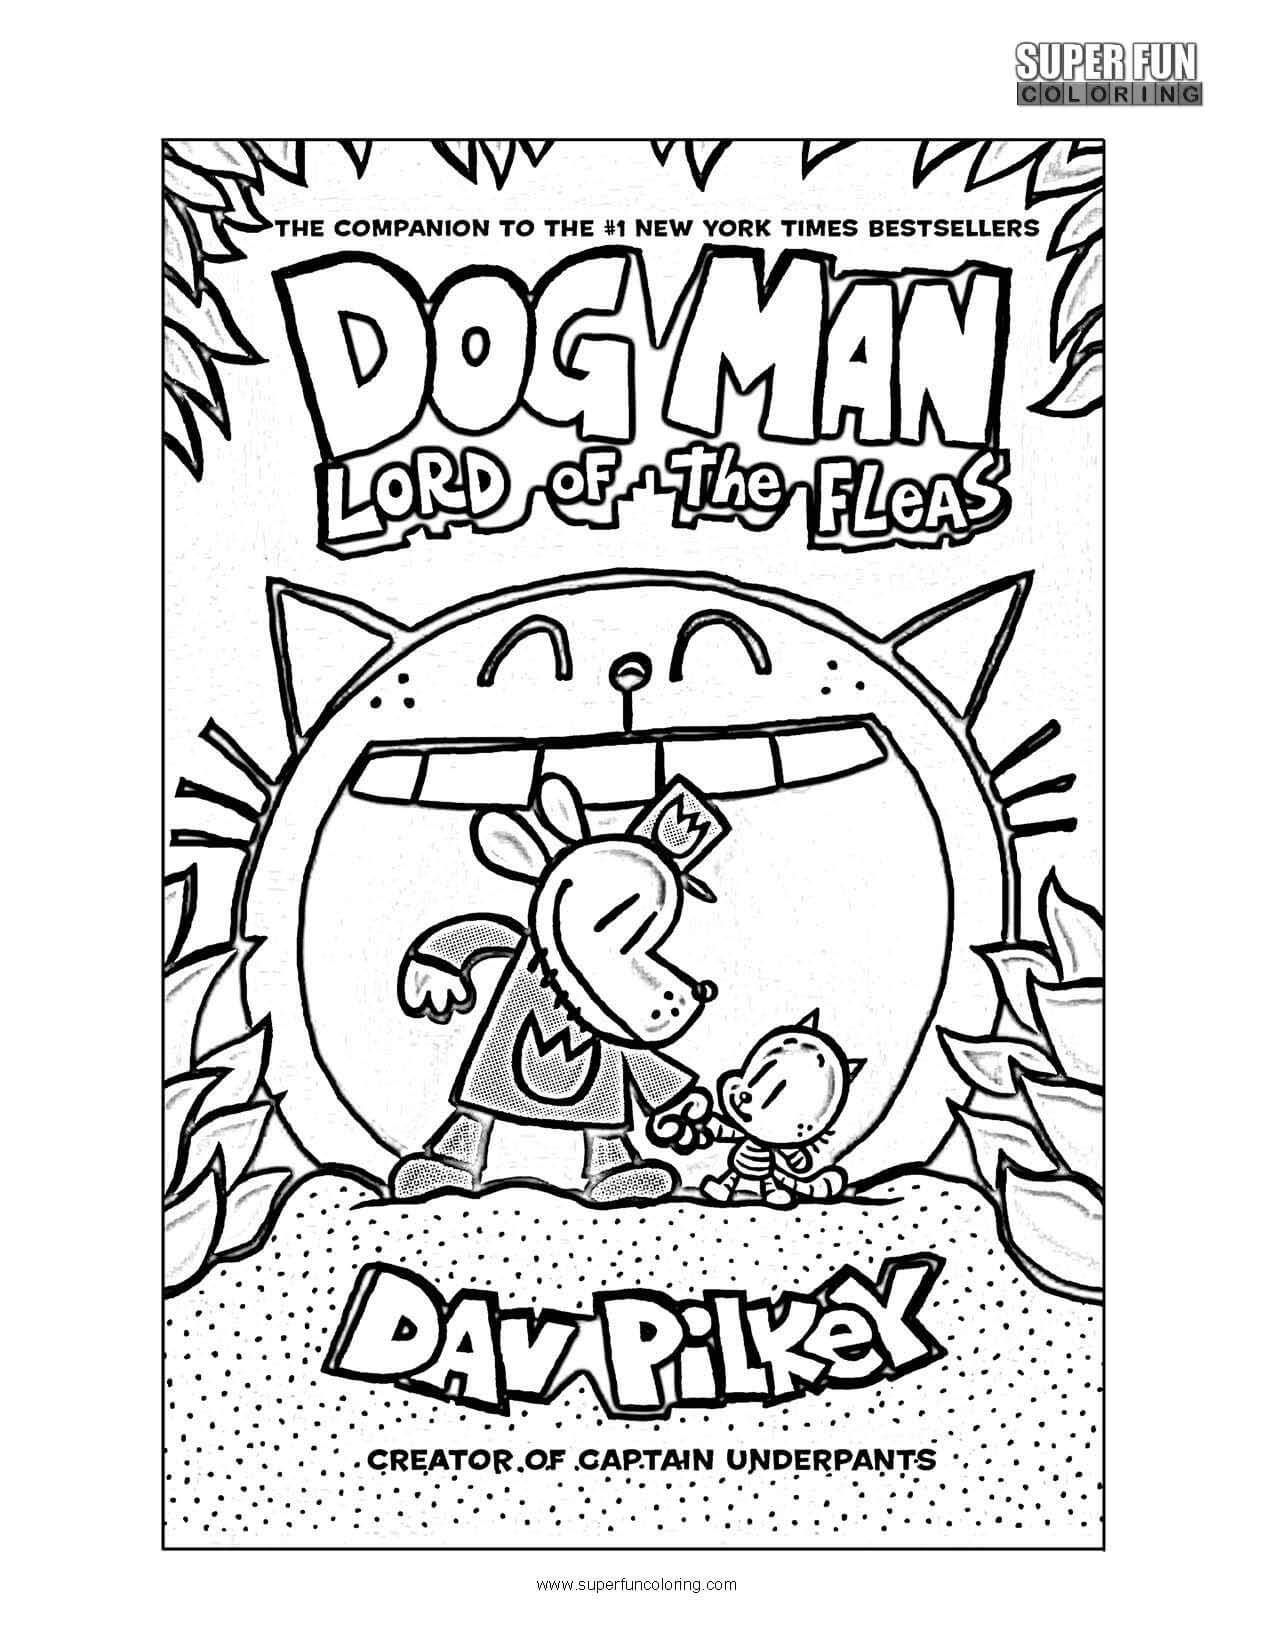 Dogman Coloring Pages For Kids Coloring Pages Printable Coloring Pages Dog Coloring Page